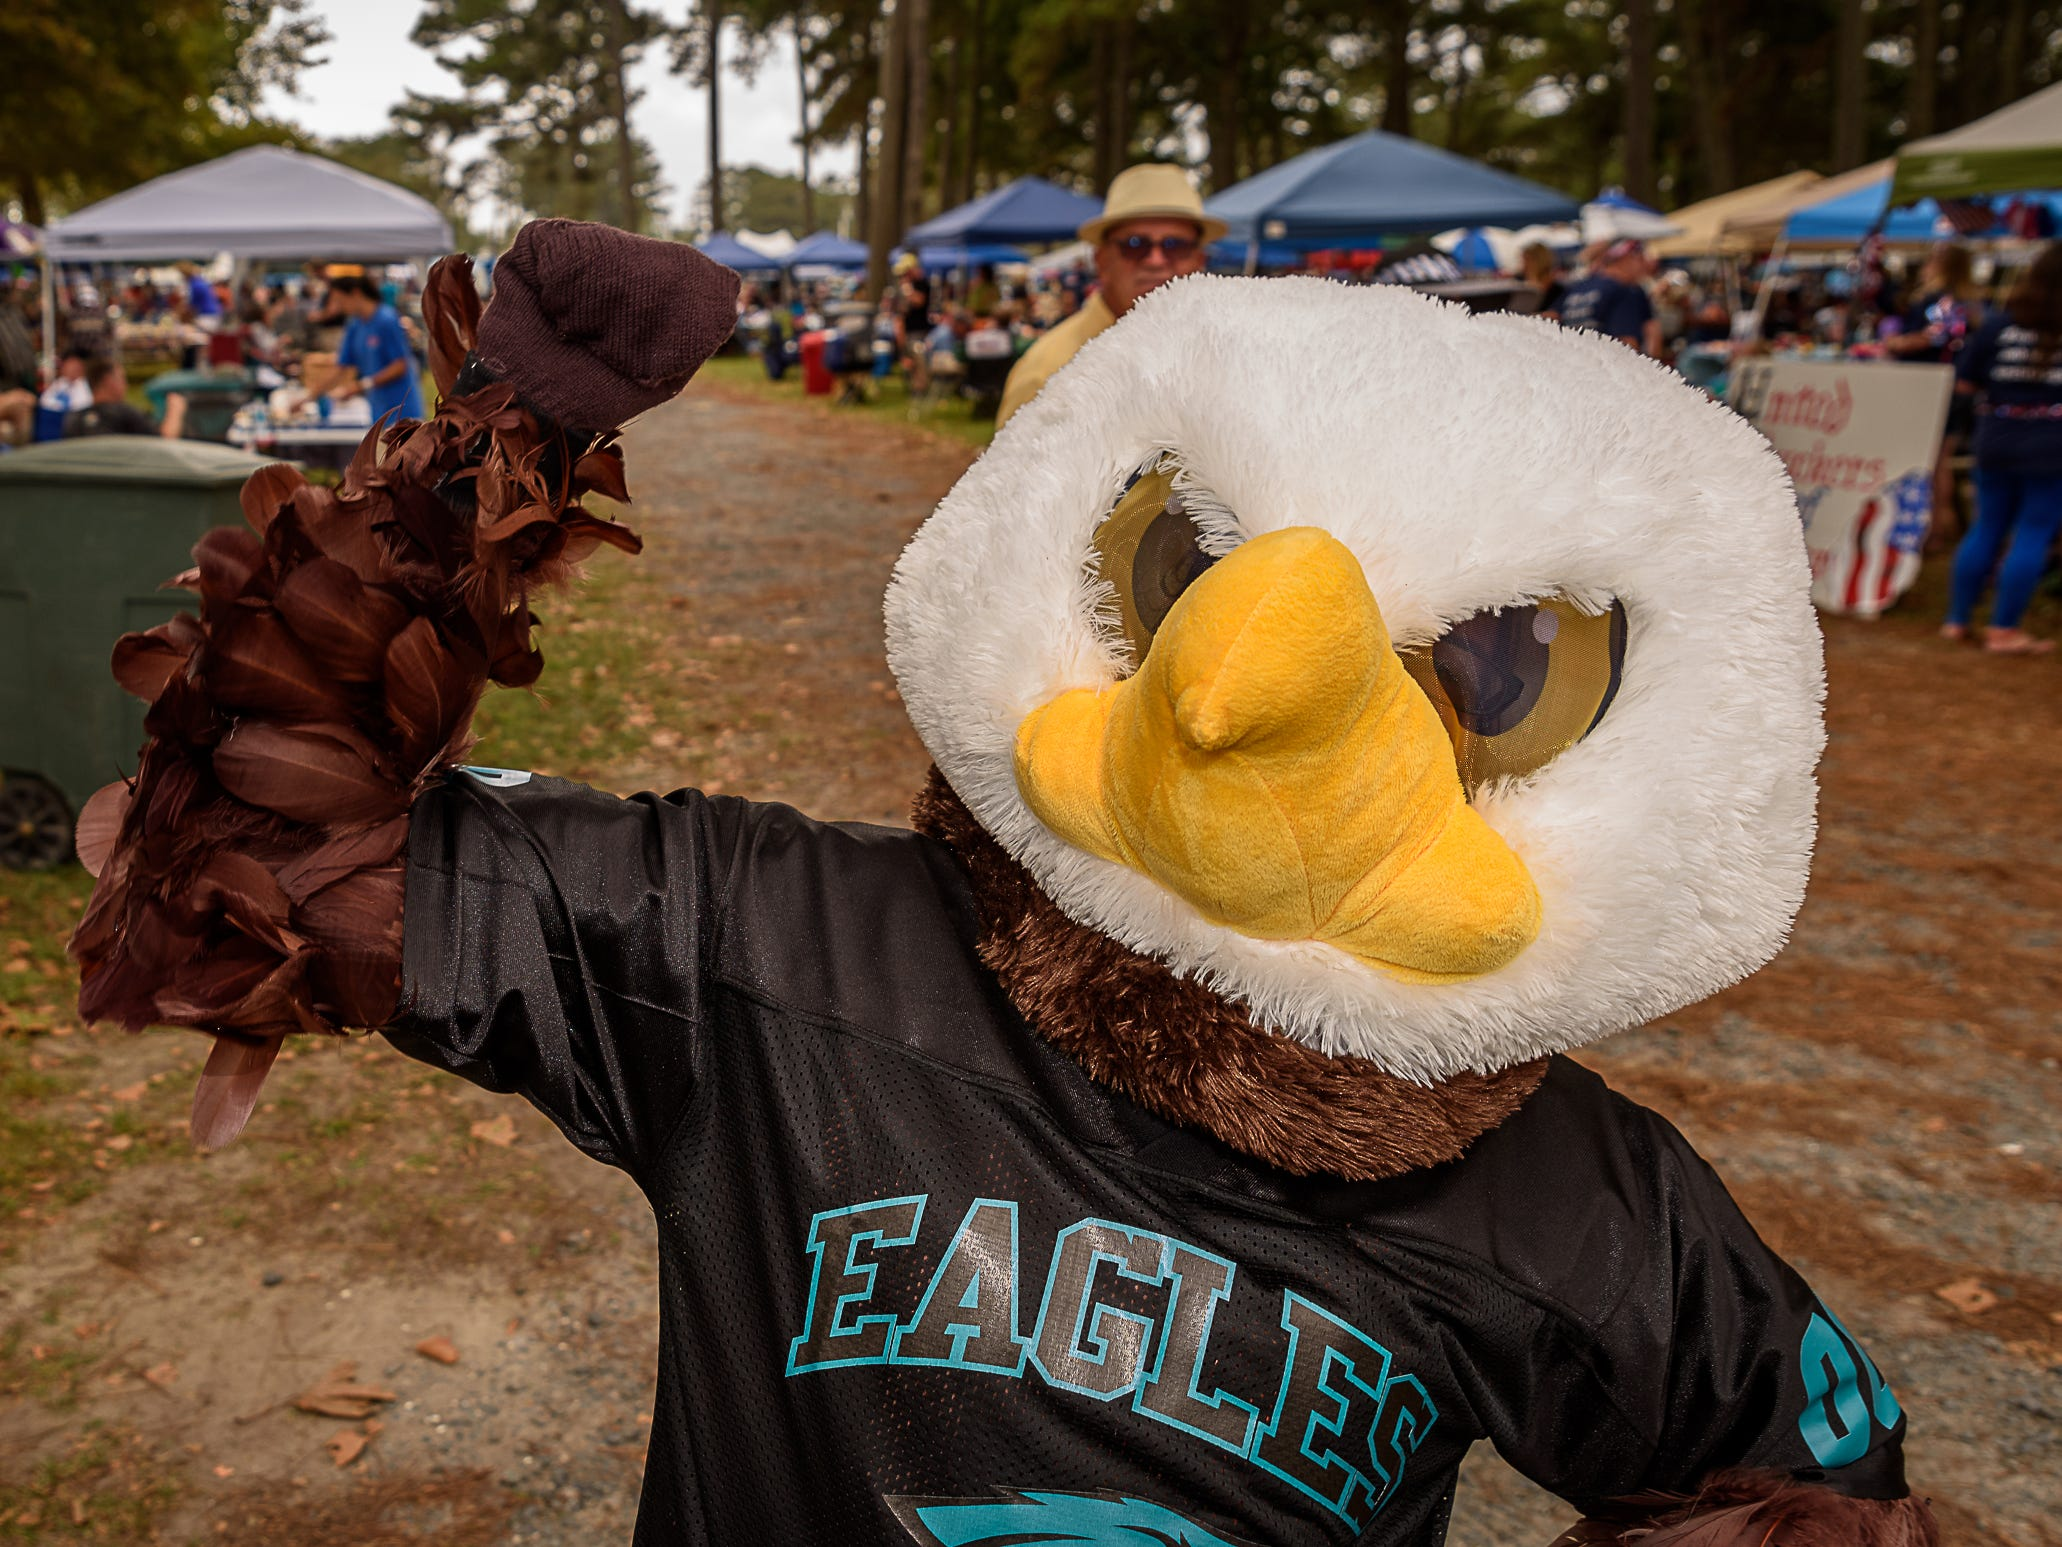 A Philidelphia Eagles fan is dressed for the occasion at Chincoteague Oyster Festival.